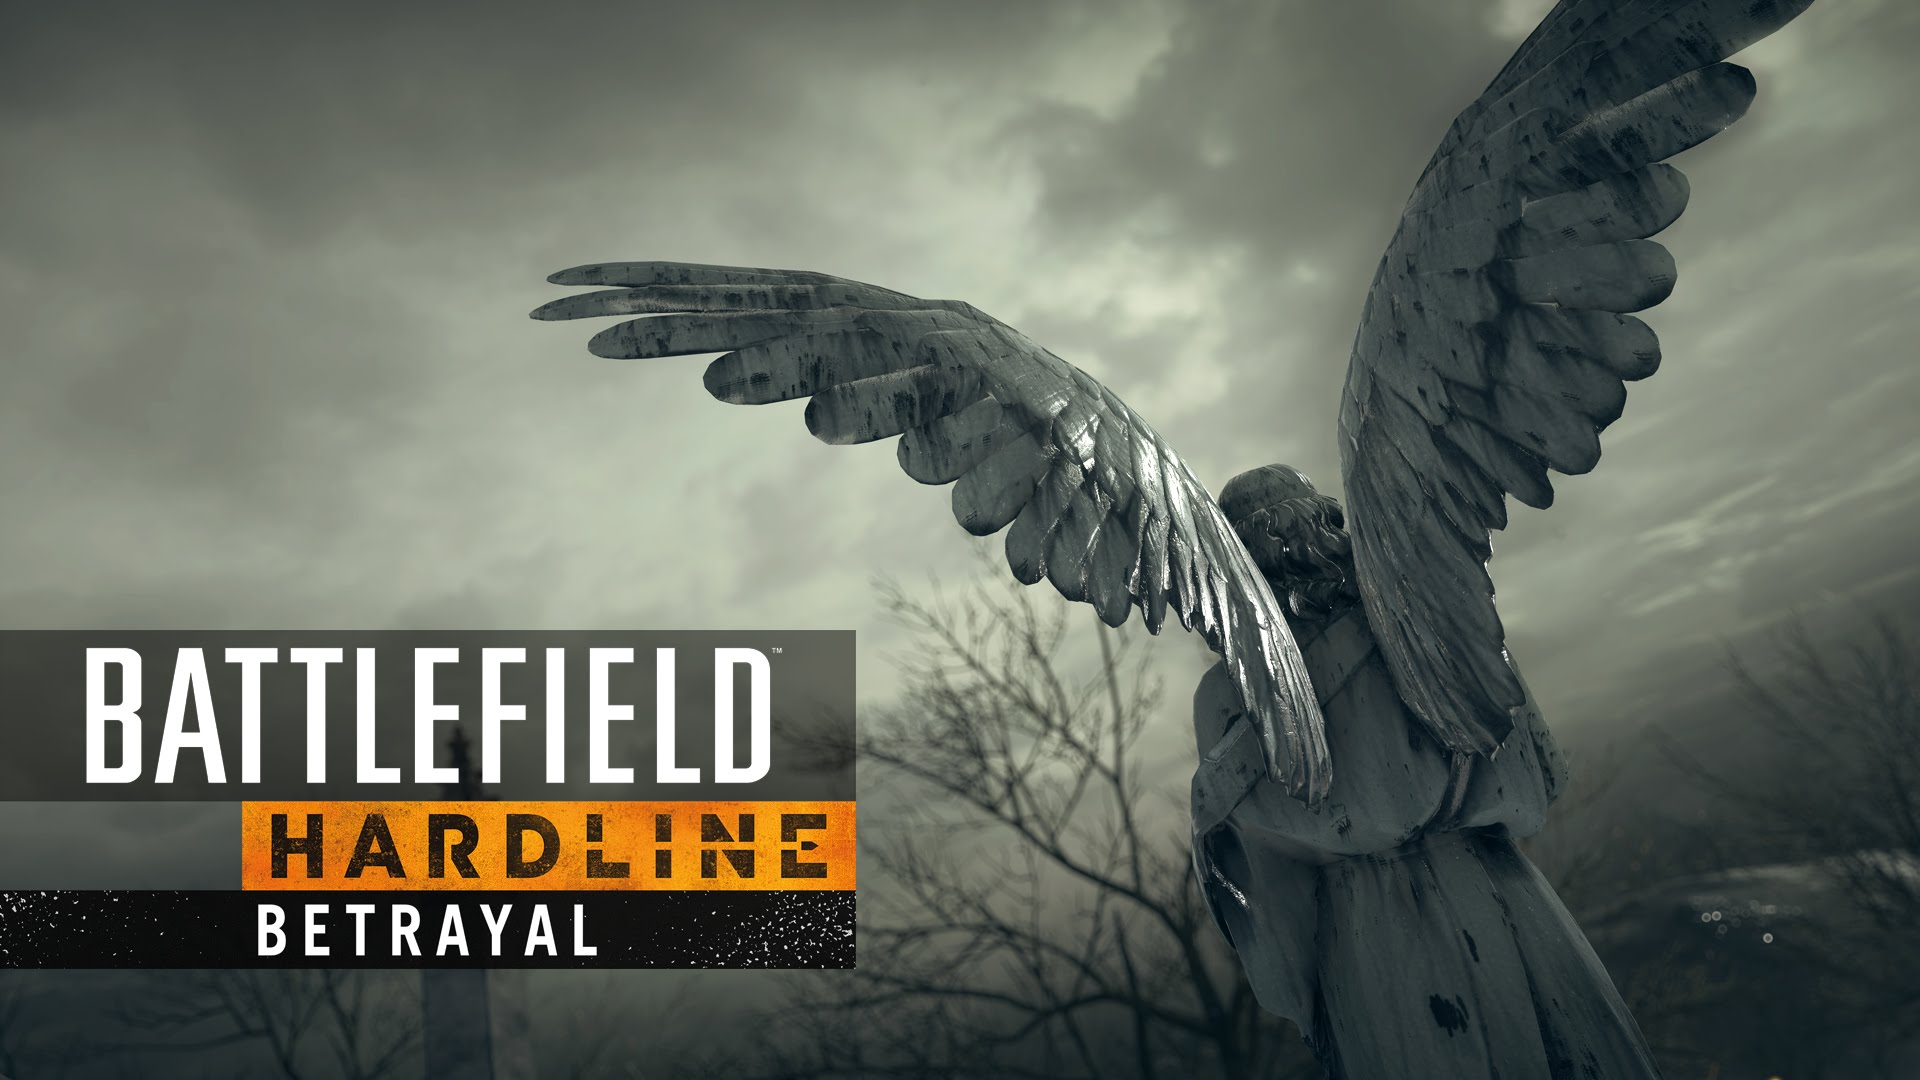 Battlefield Hardline: Betrayal - 4 All-New Maps Sneak Peek